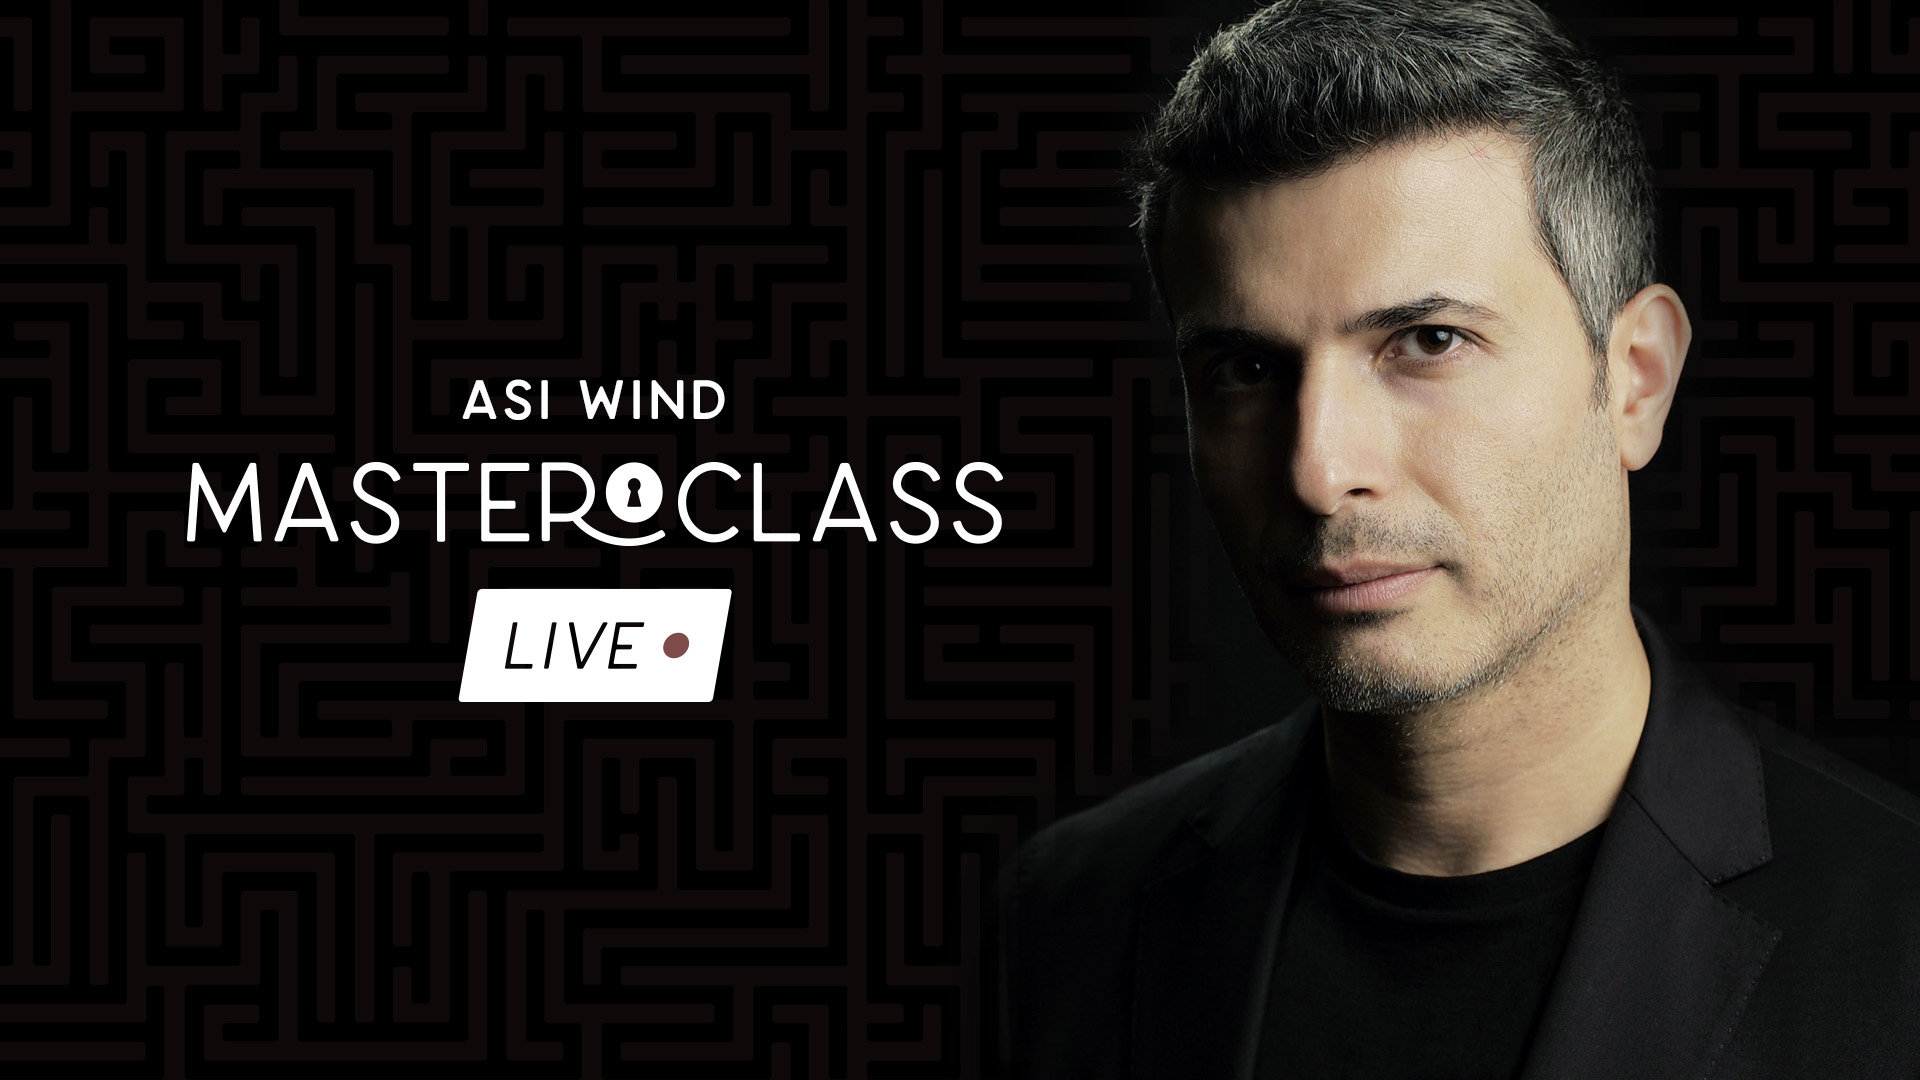 Asi Wind: Masterclass: Live - Asi Wind - Vanishing Inc. Magic shop